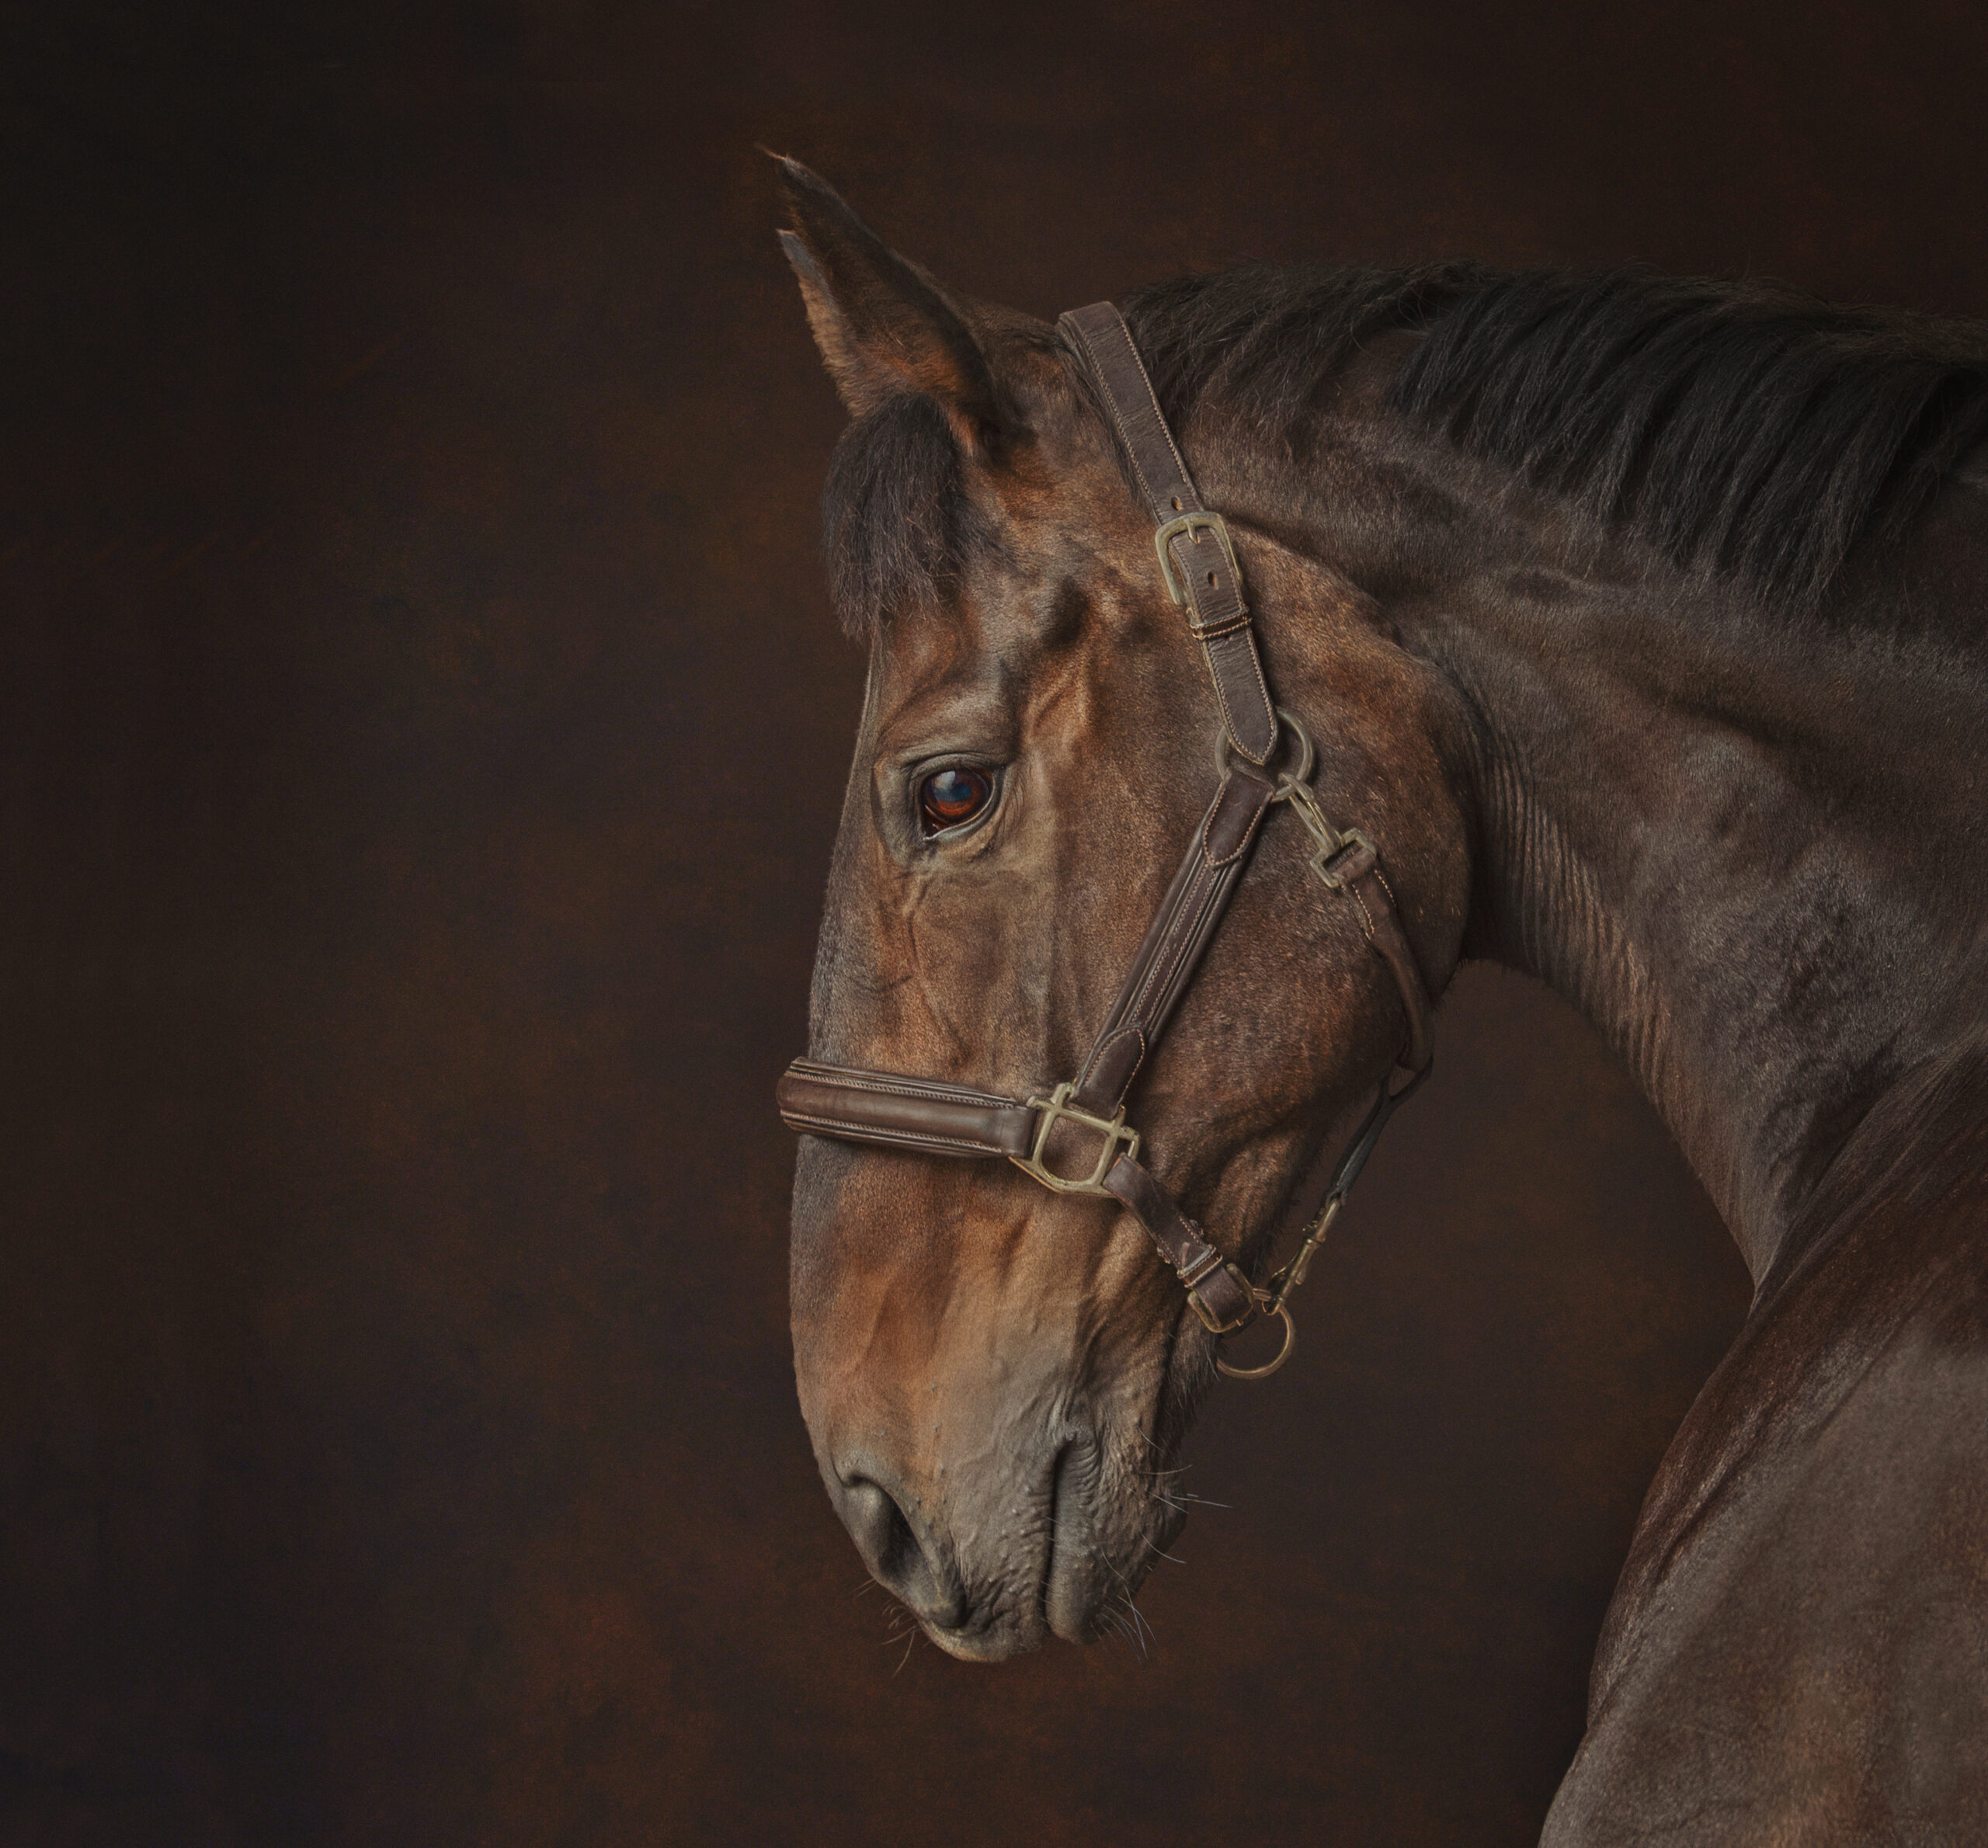 Award Winning Equine Image by Emma Campbell